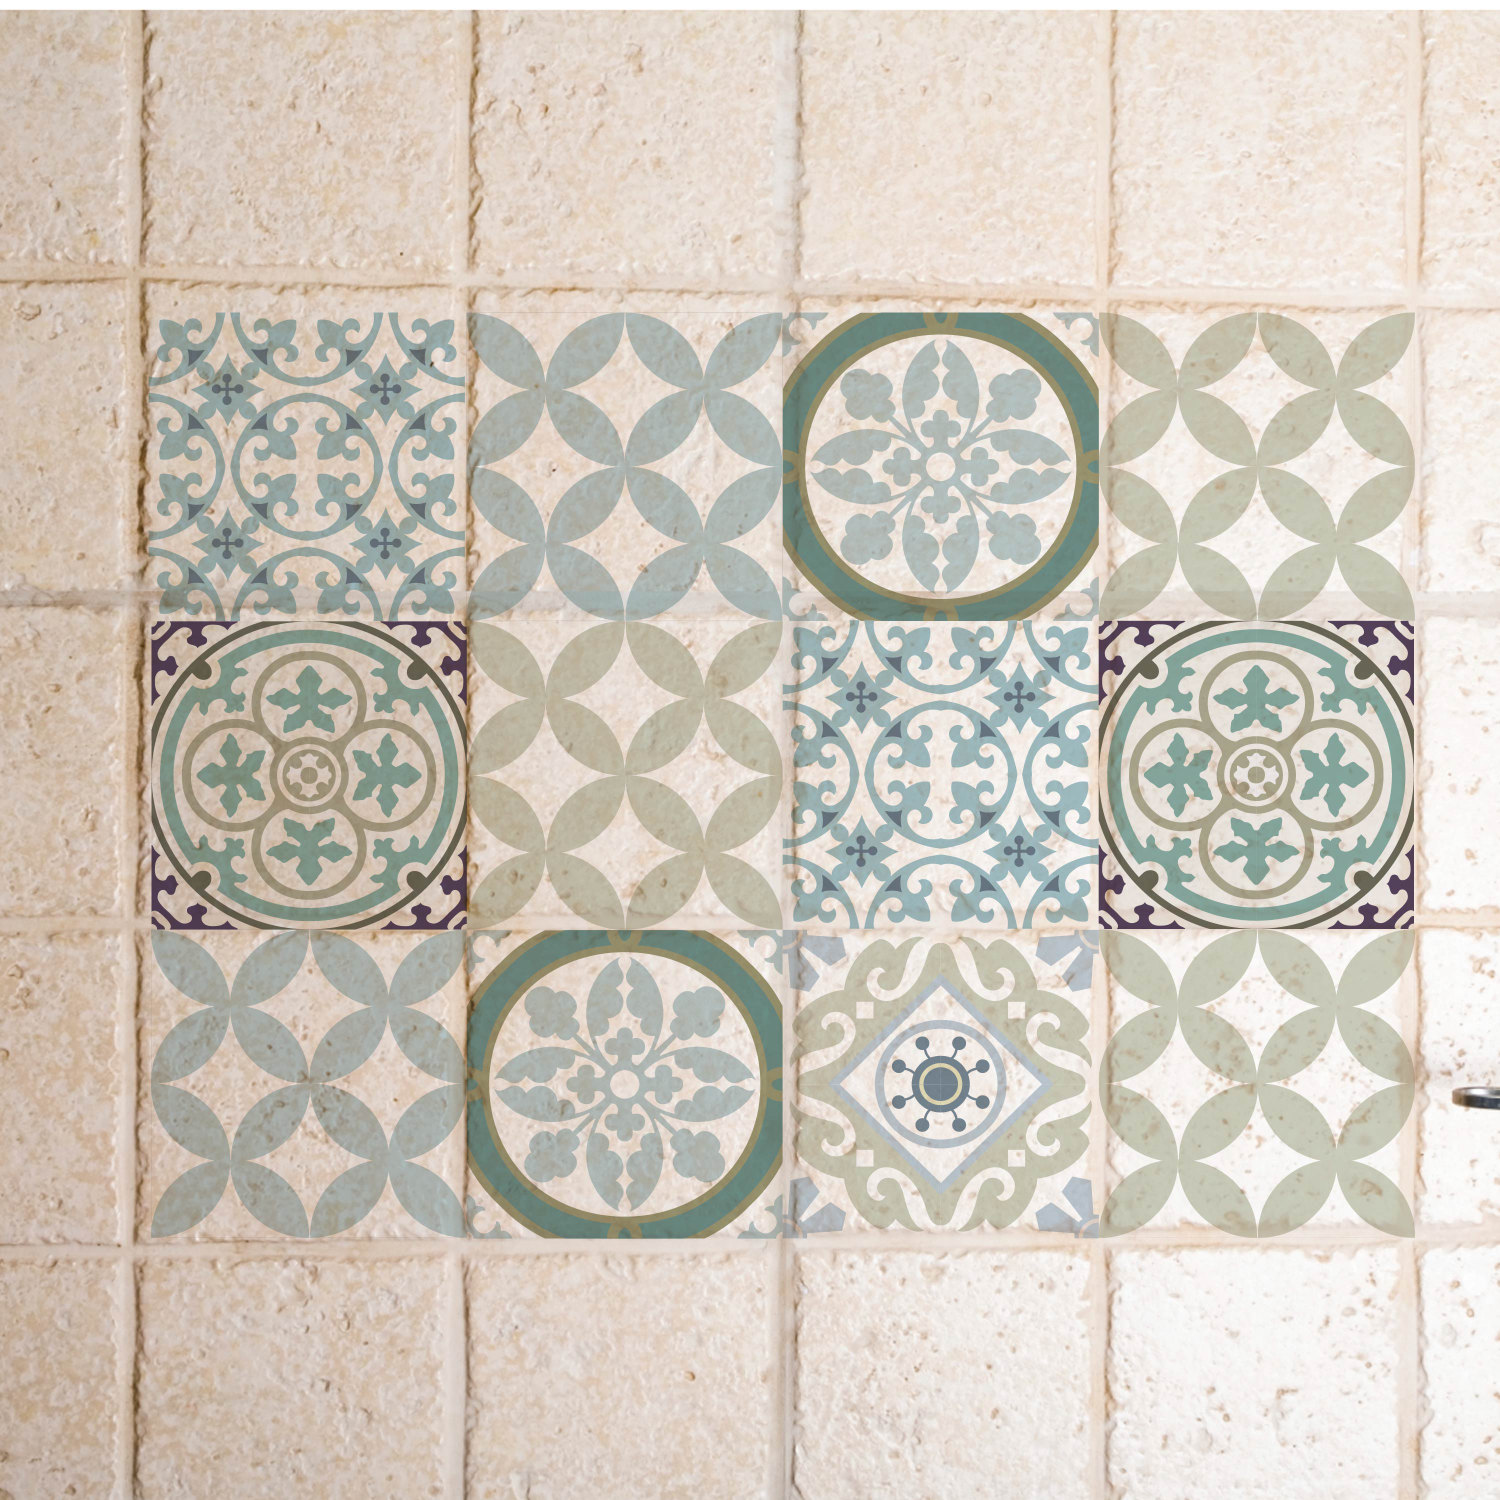 mix-tile-decals-kitchenbathroom-tiles-vinyl-floor-tiles-free-shipping-design-314-5897b15c3.jpg